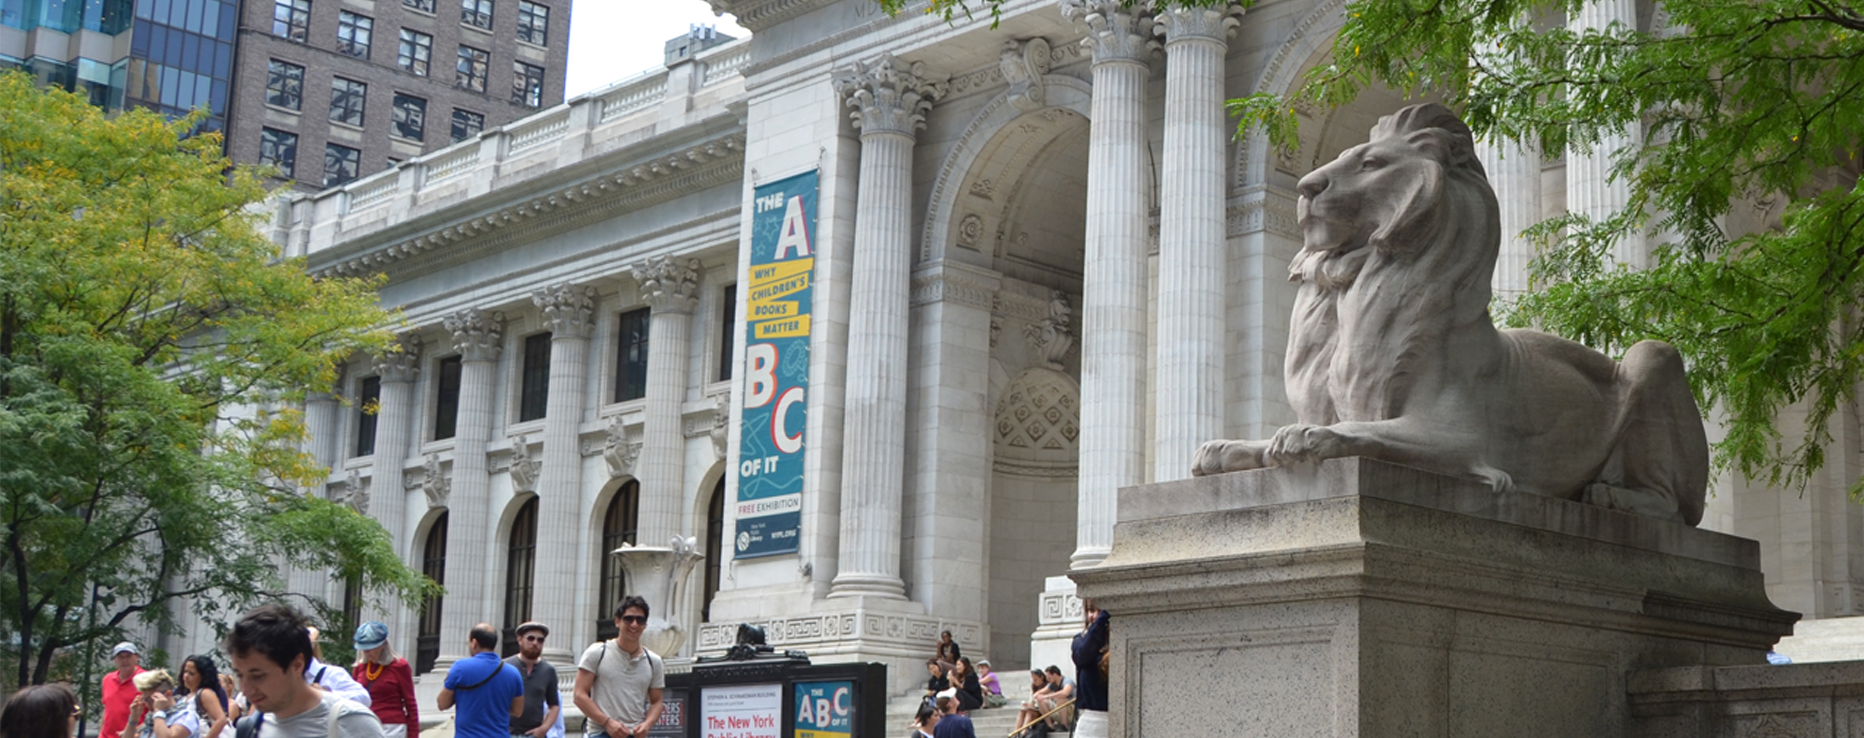 Lion statue at New York Public Library in Bryant Park